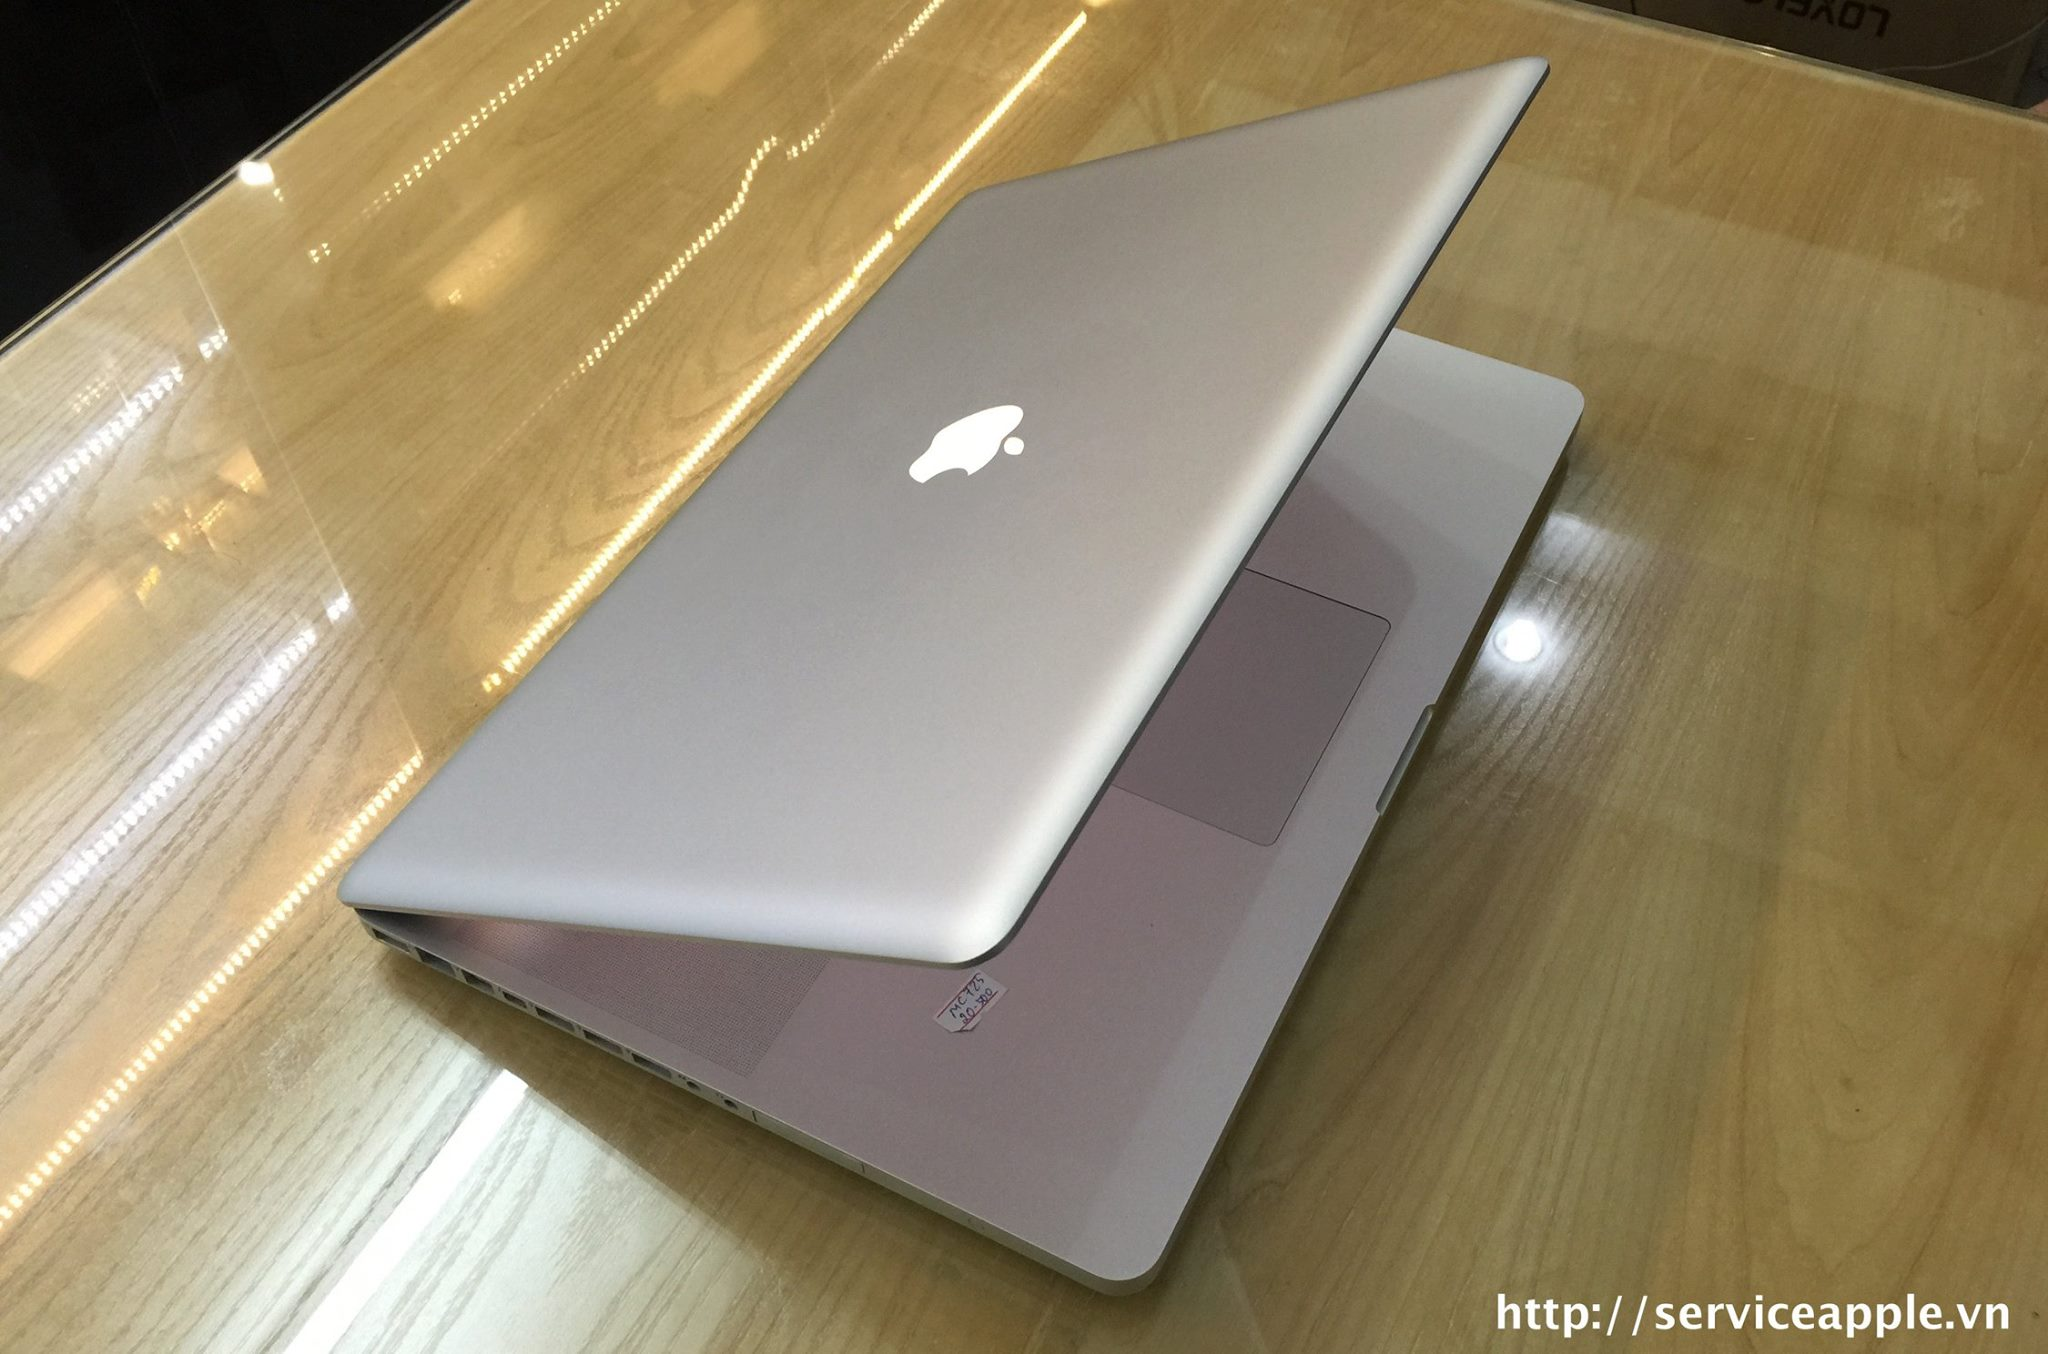 macbook pro mc725.jpg